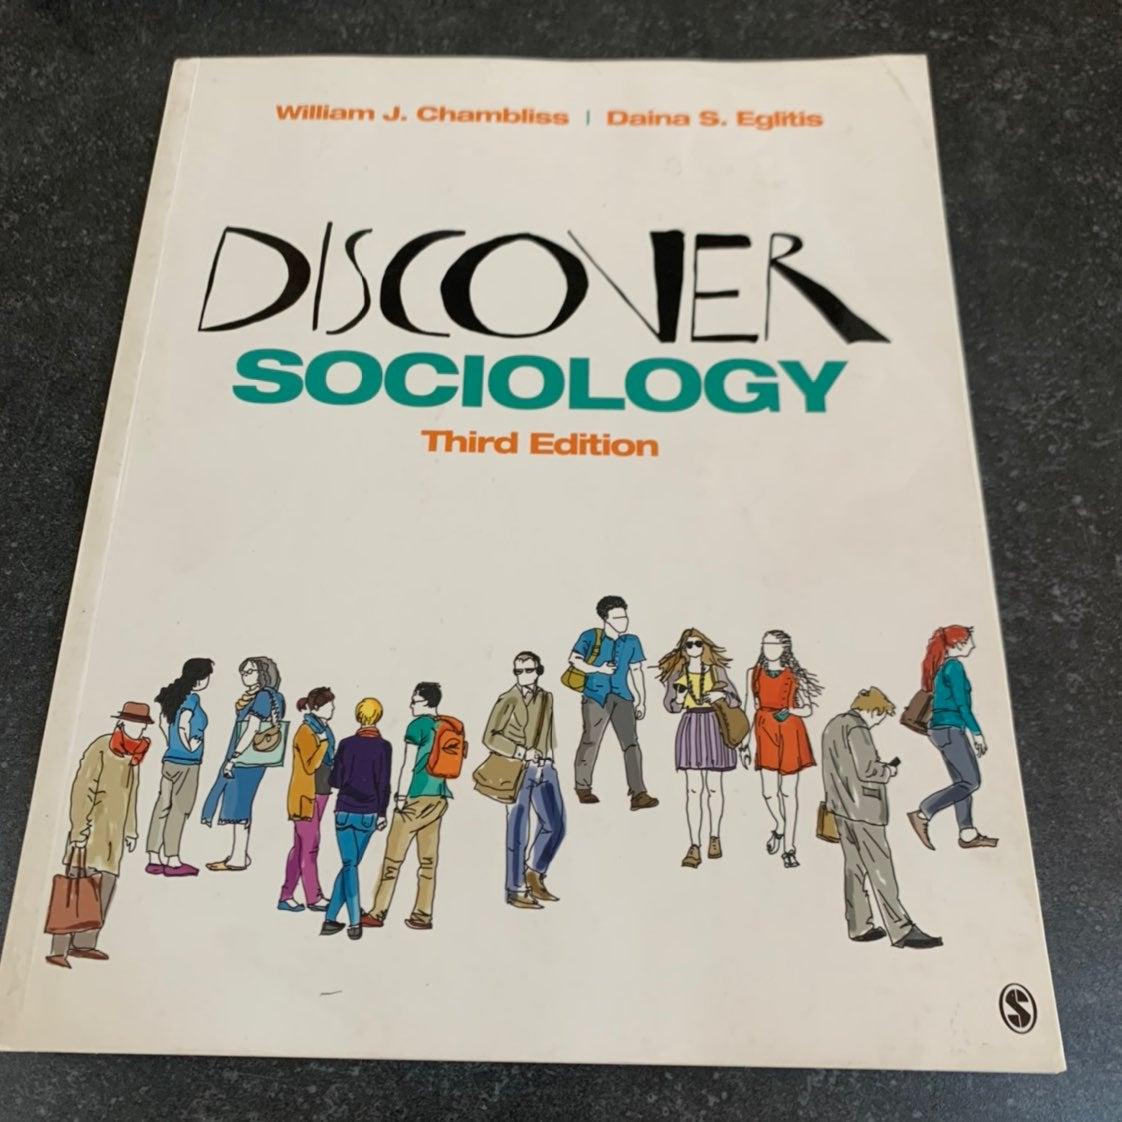 Discover Sociology 3rd edition